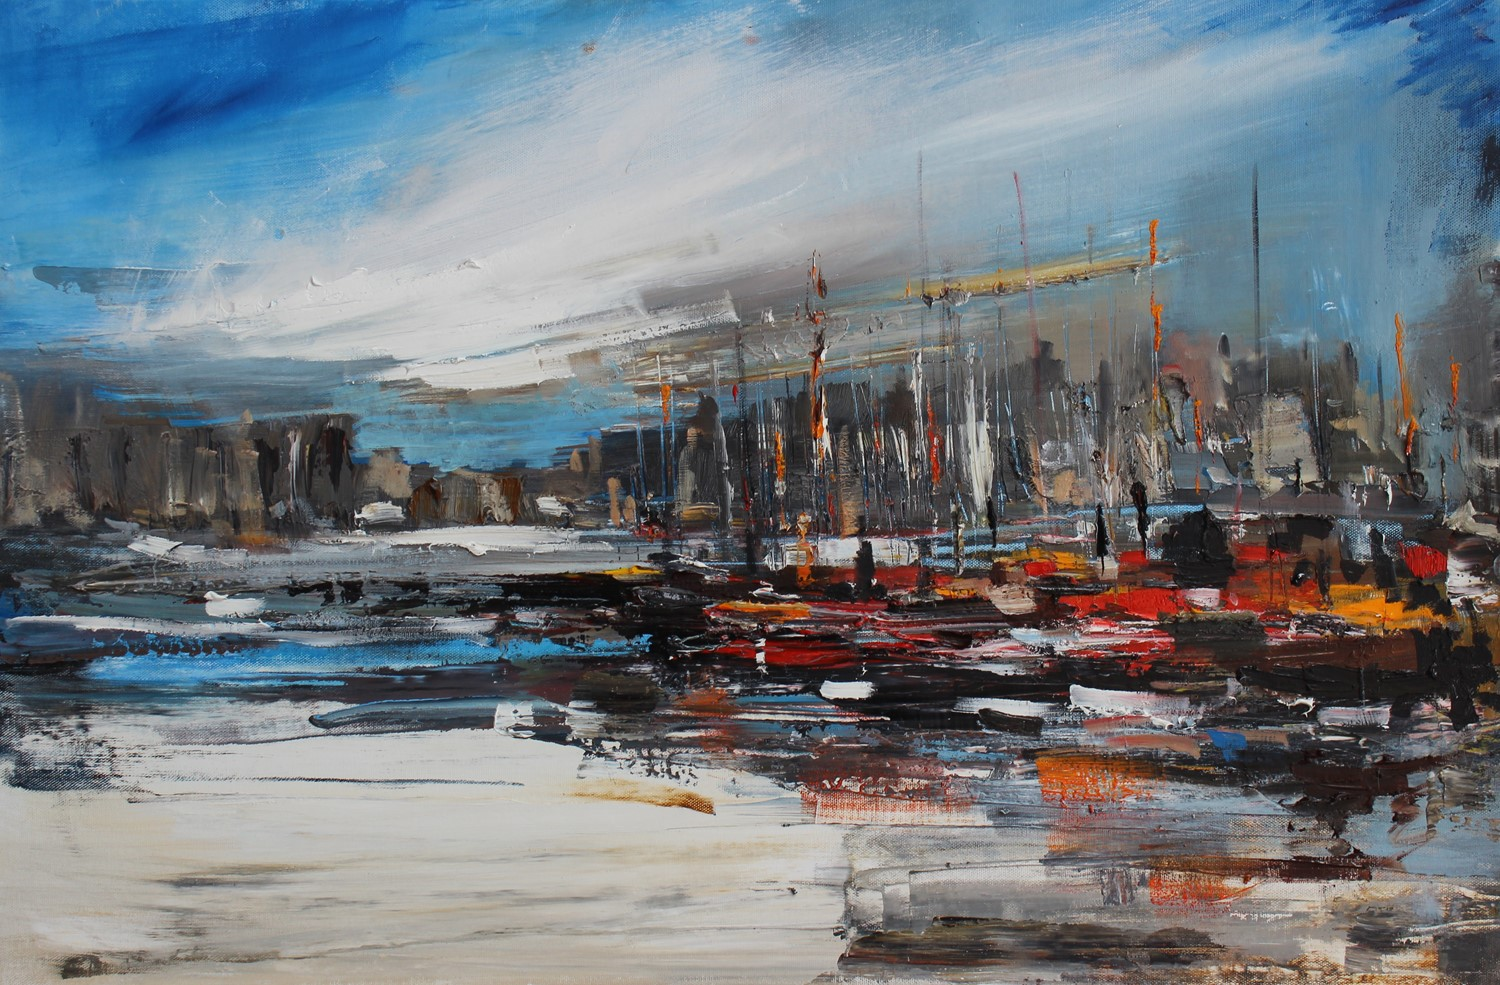 'Old Town Harbour' by artist Rosanne Barr